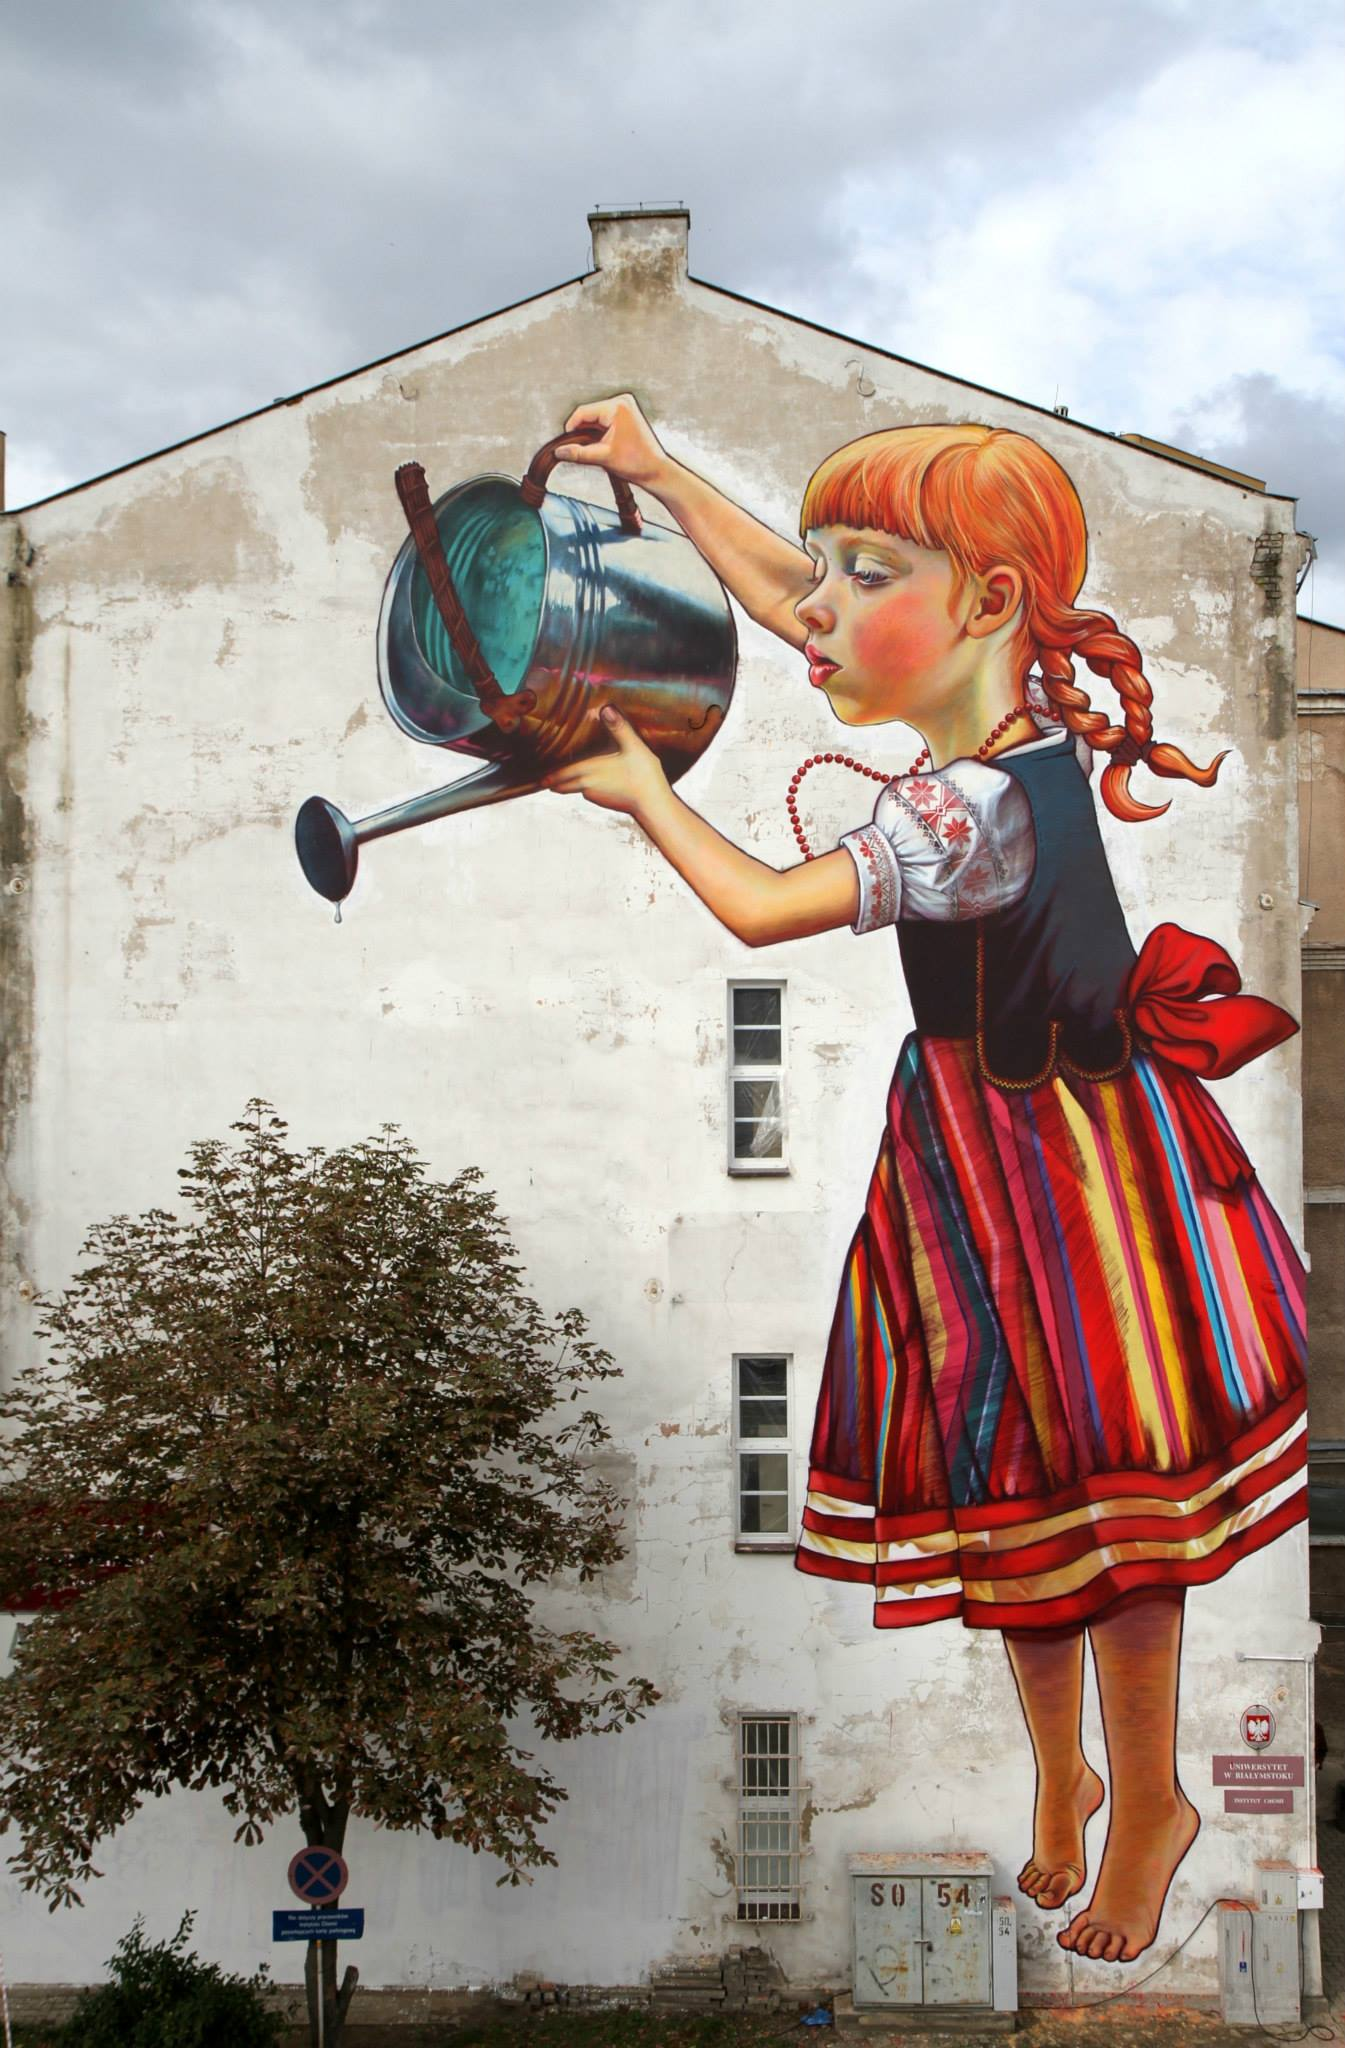 Mural by Natalii Rak at Folk on the Street in Białymstoku, Poland 1